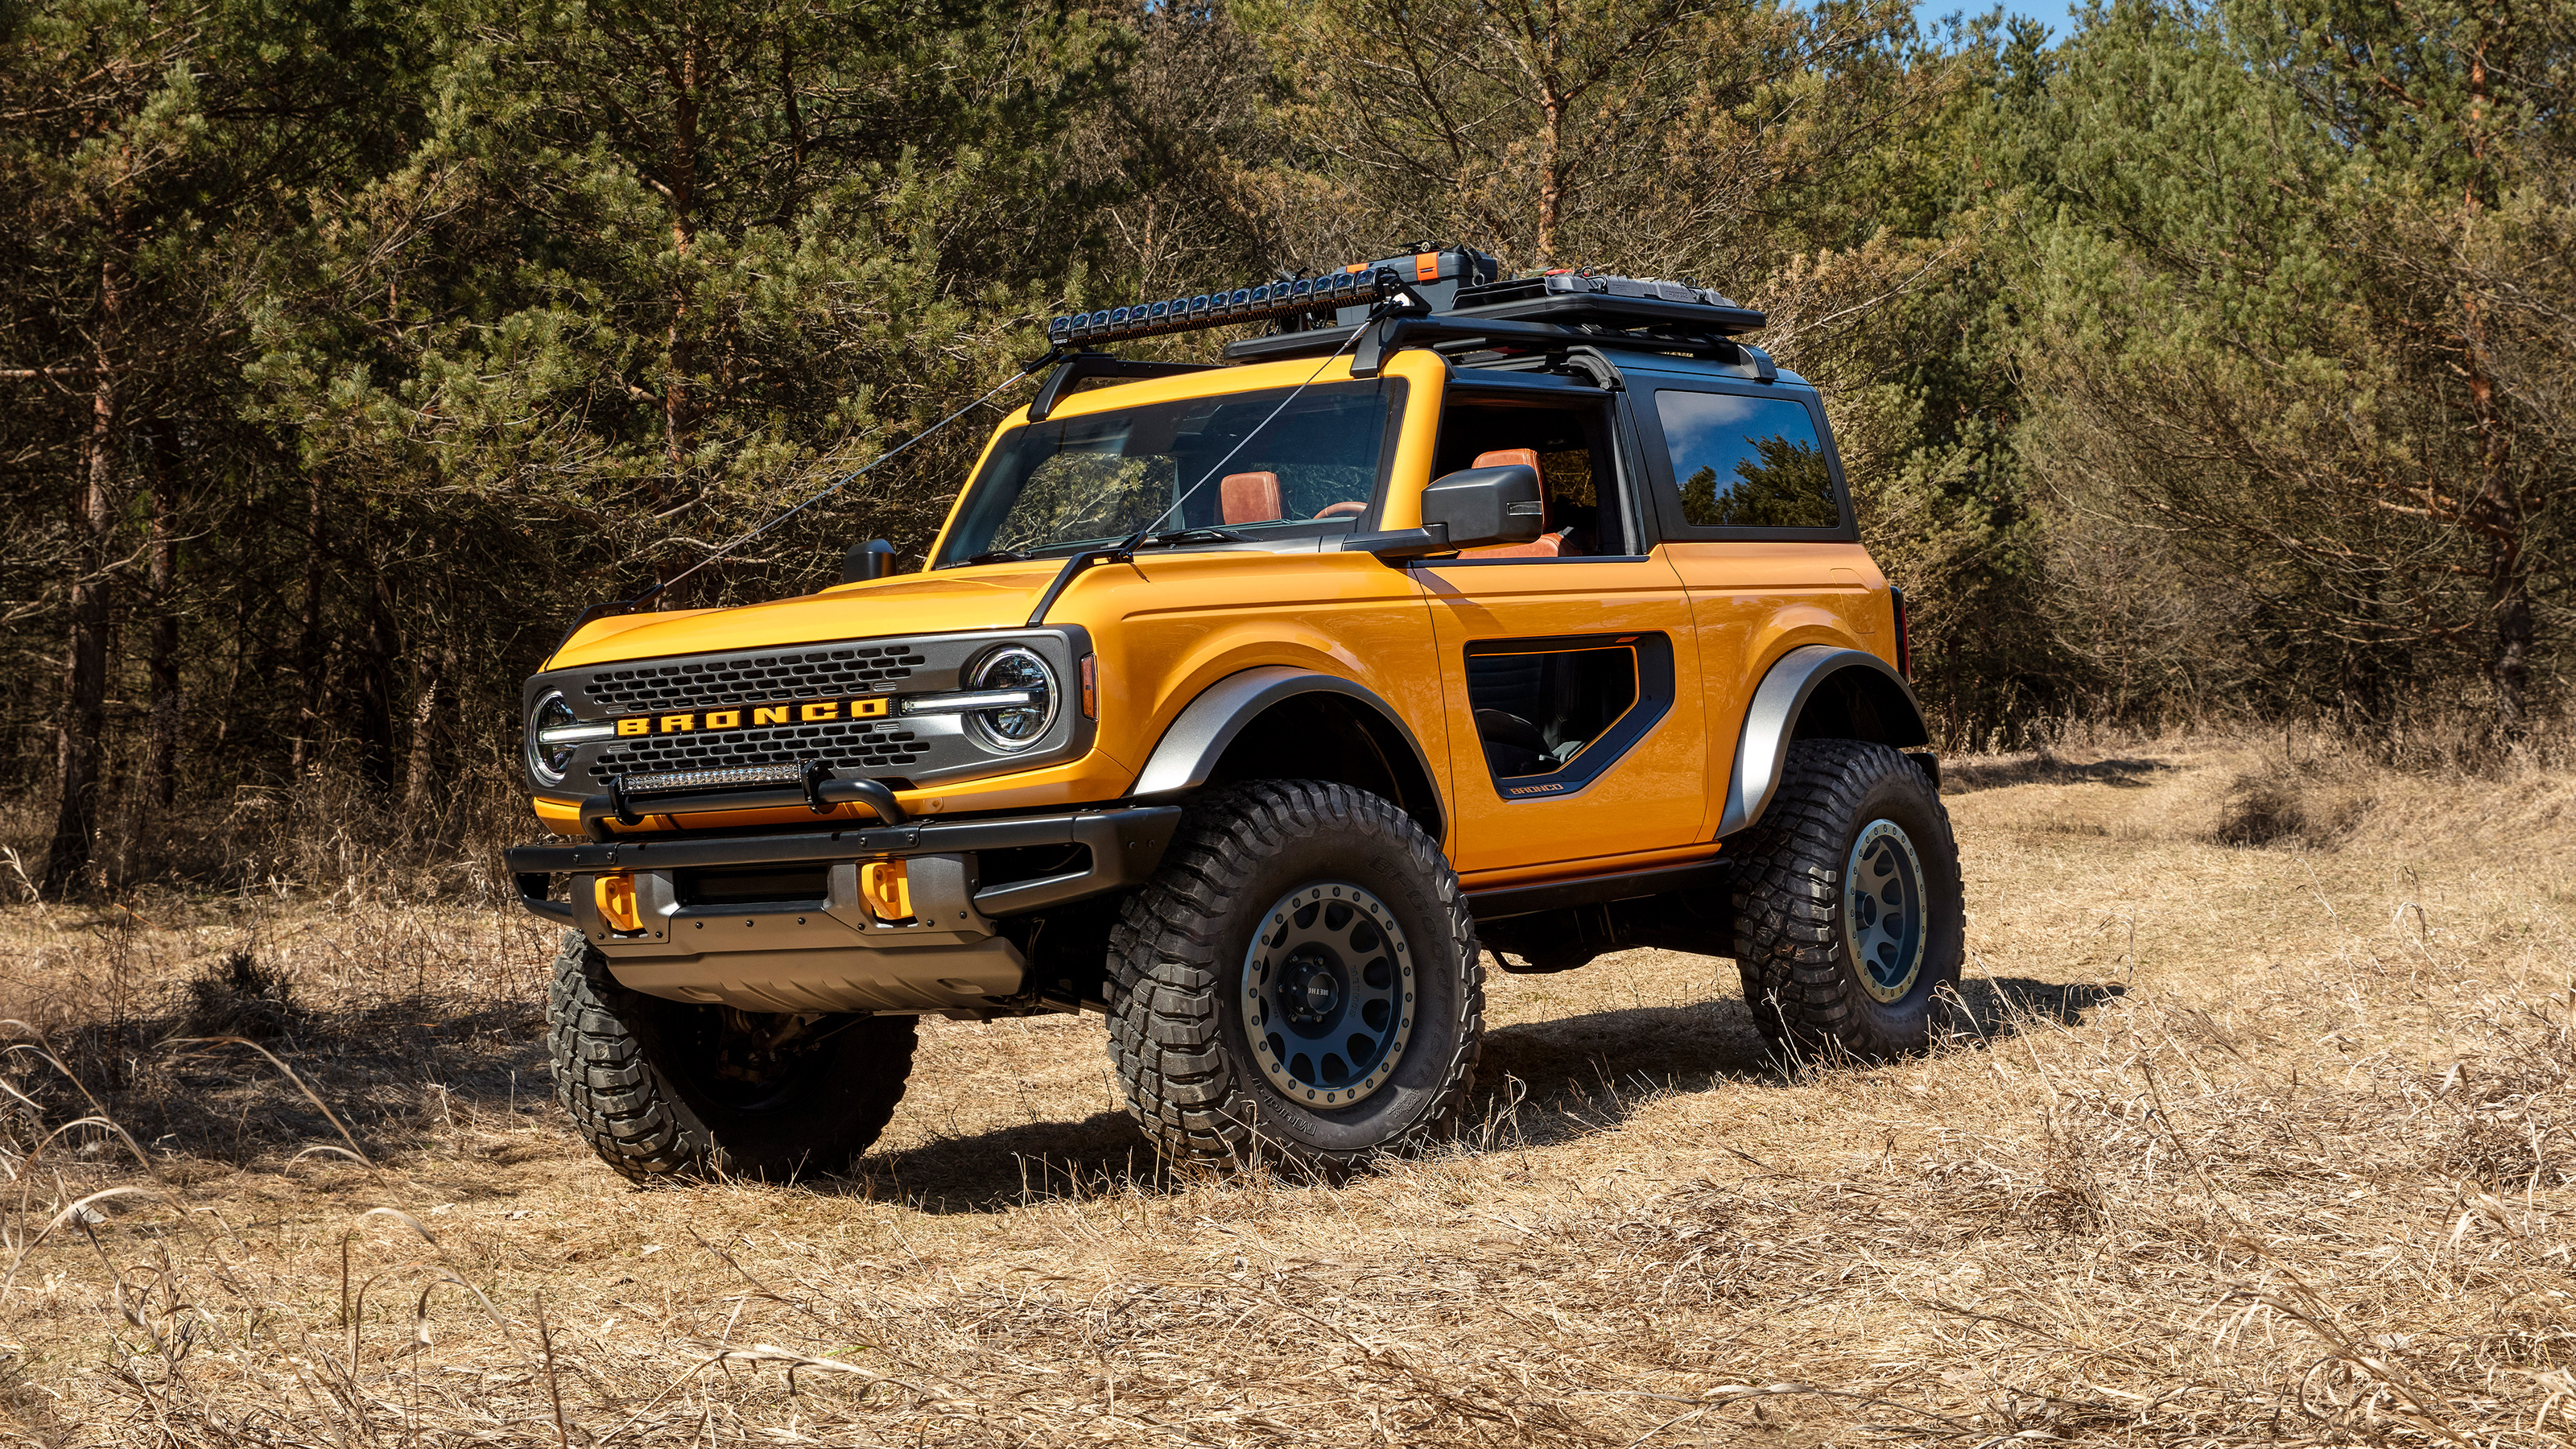 New 2021 Ford Bronco off-roader: specs, video and full ...